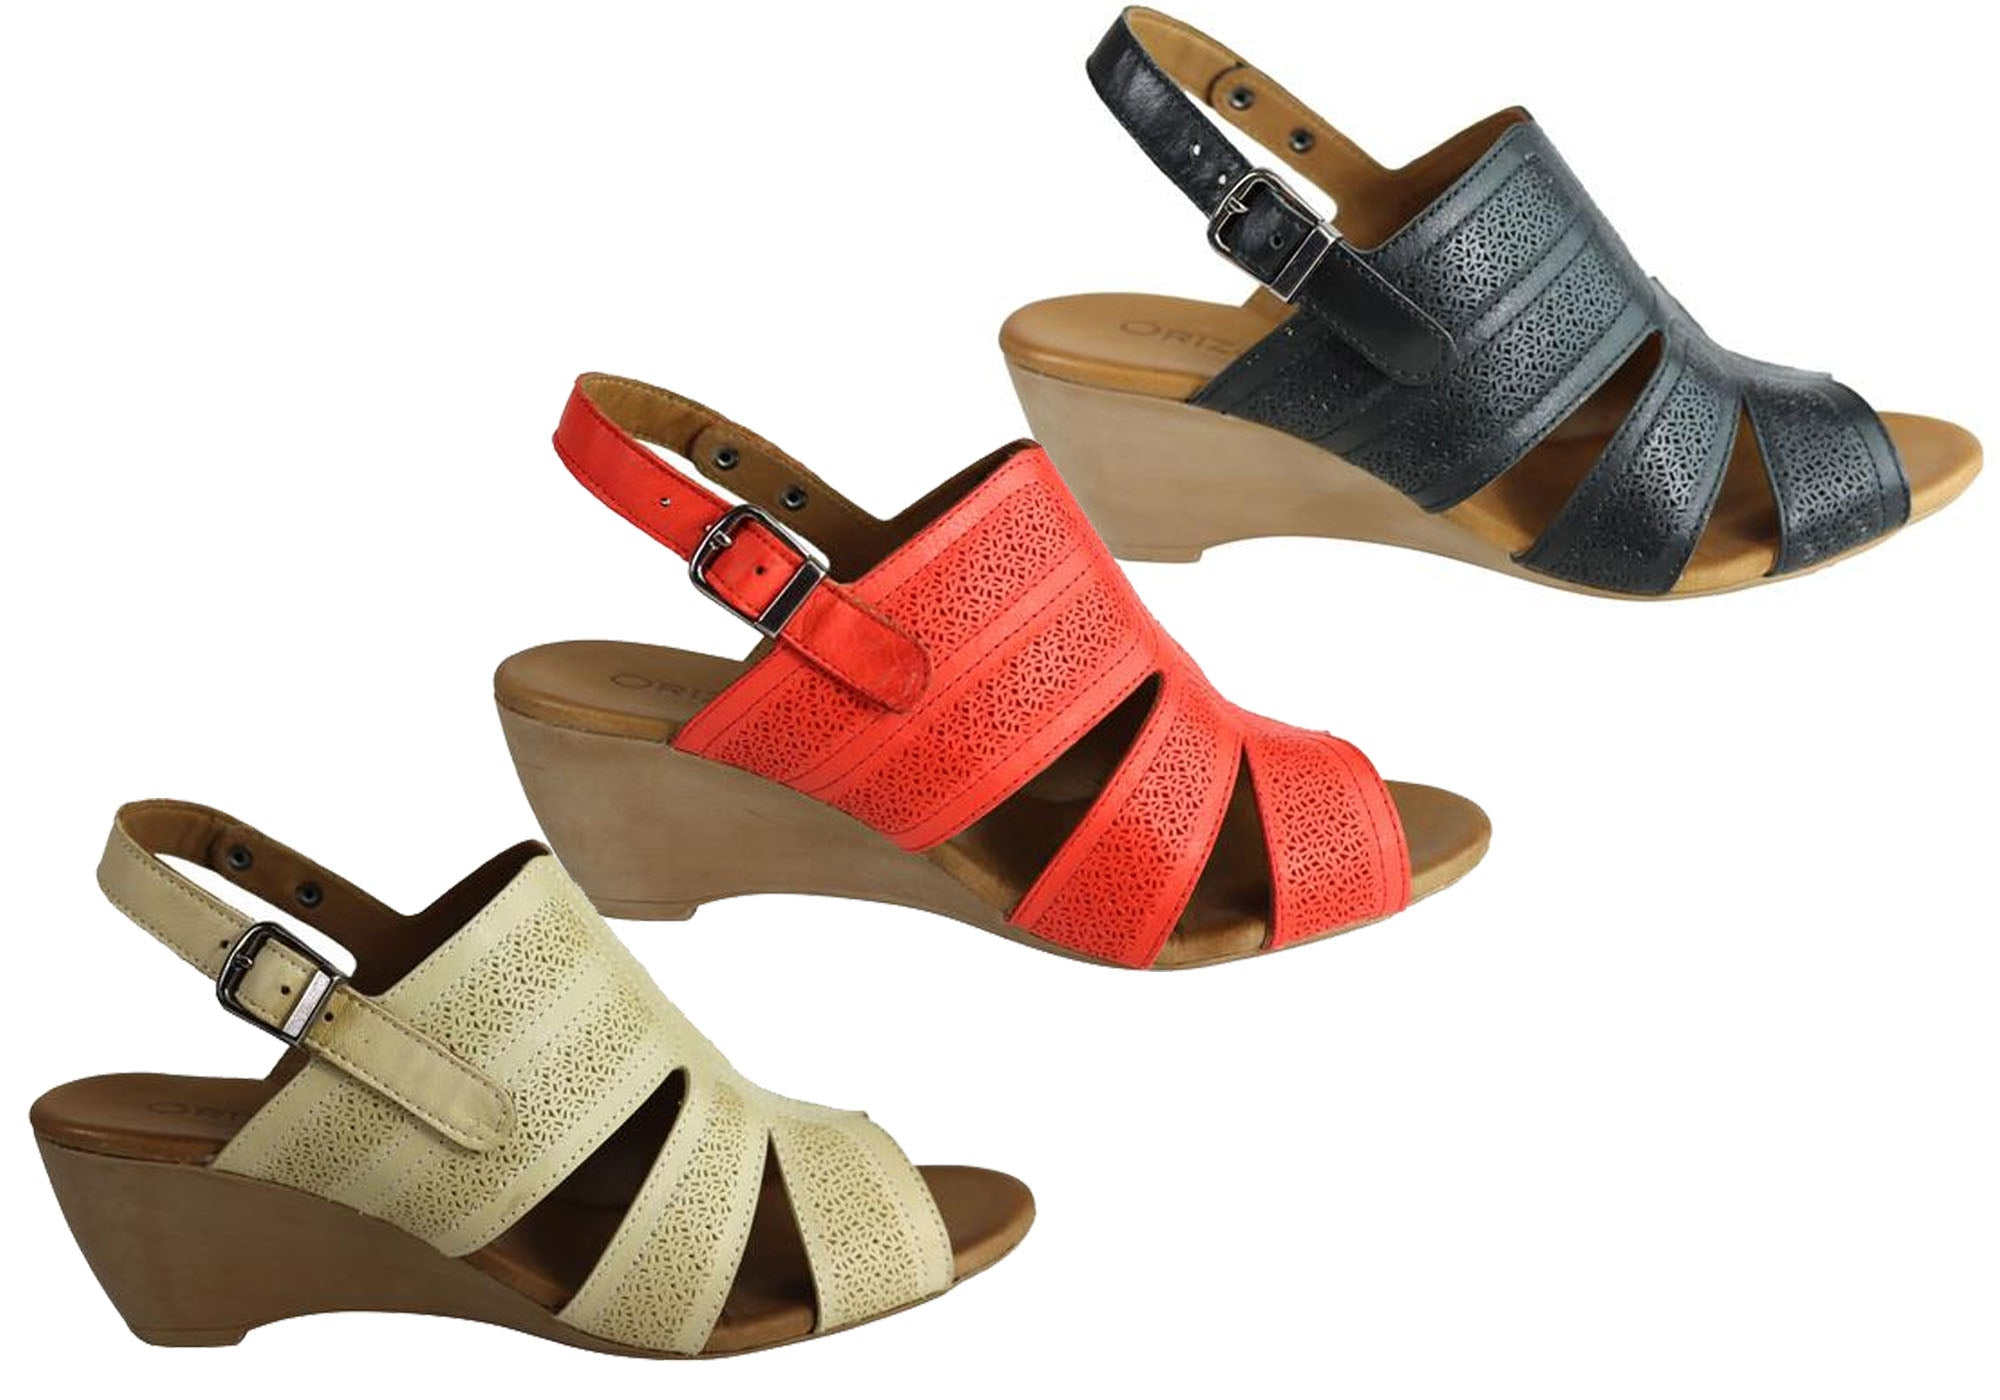 Details about NEW ORIZONTE PINTA WOMENS EUROPEAN LEATHER COMFORTABLE WEDGE SANDALS